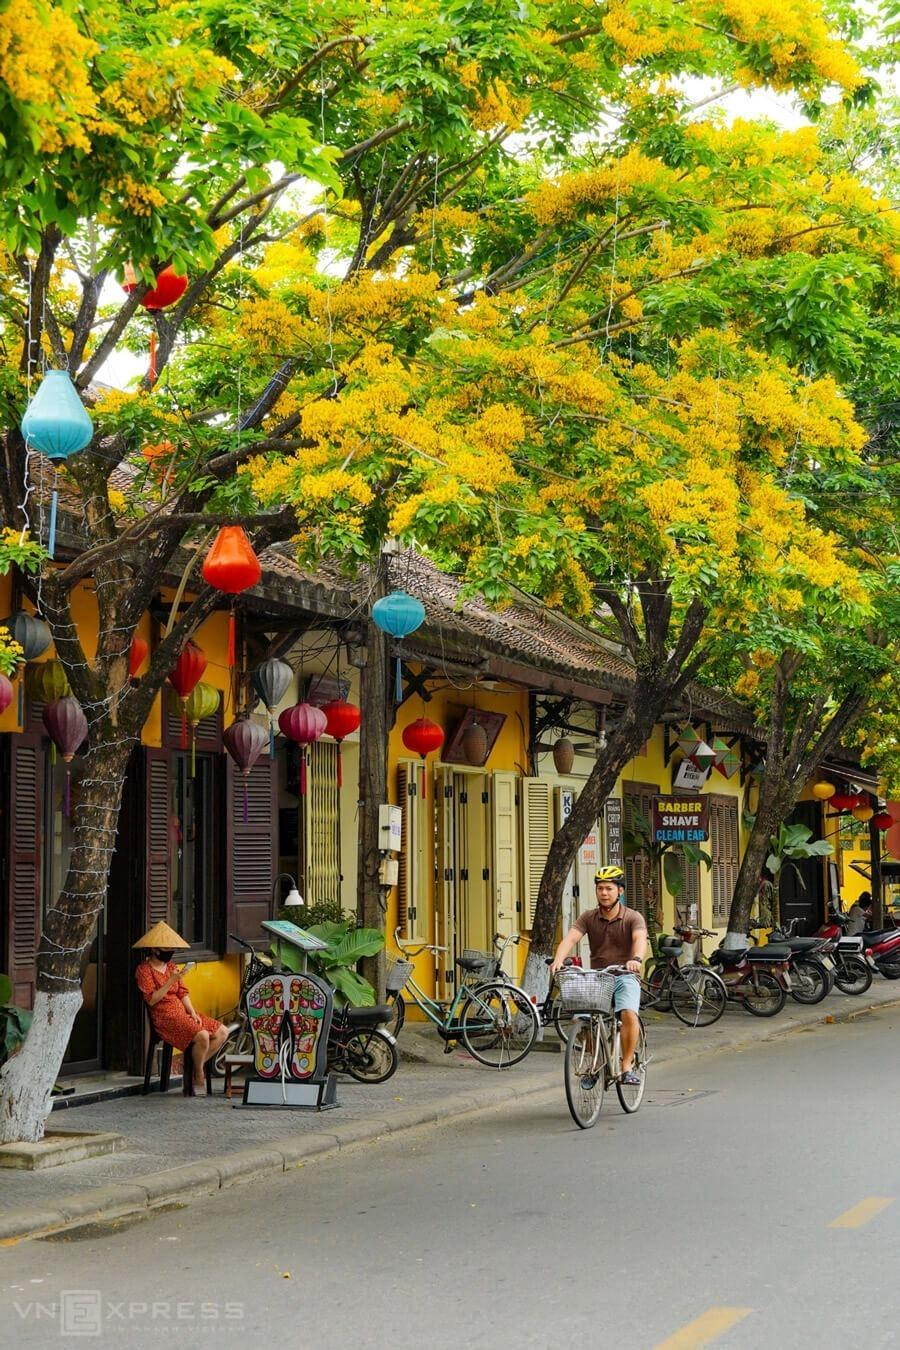 A man rents a bicycle and rides under the shades of sua flowers.Hoi An has been a pioneer in the country since 2004 for ensuring pedestrian-friendly streets. Motorbikes and cars are banned from the town center for large parts of the day – from 9 a.m. to 11 a.m. and from 3 p.m. to 9:30 p.m., making bicycles the most ideal choice for foreigners to explore the town.  In Hoi An, most hotels, restaurants and homestay facilities offer bike rental services.